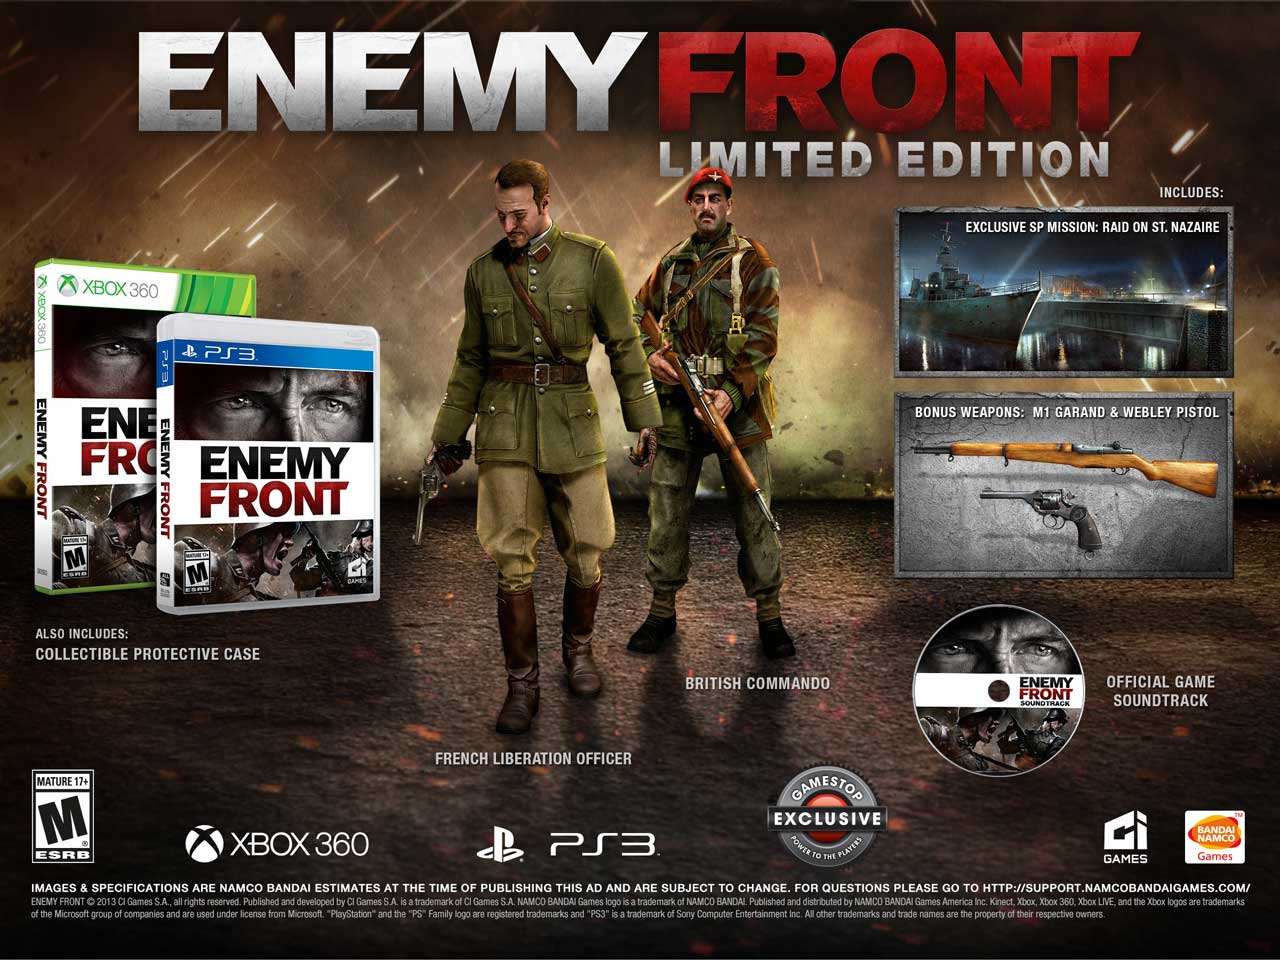 Enemy Front - GameSpot